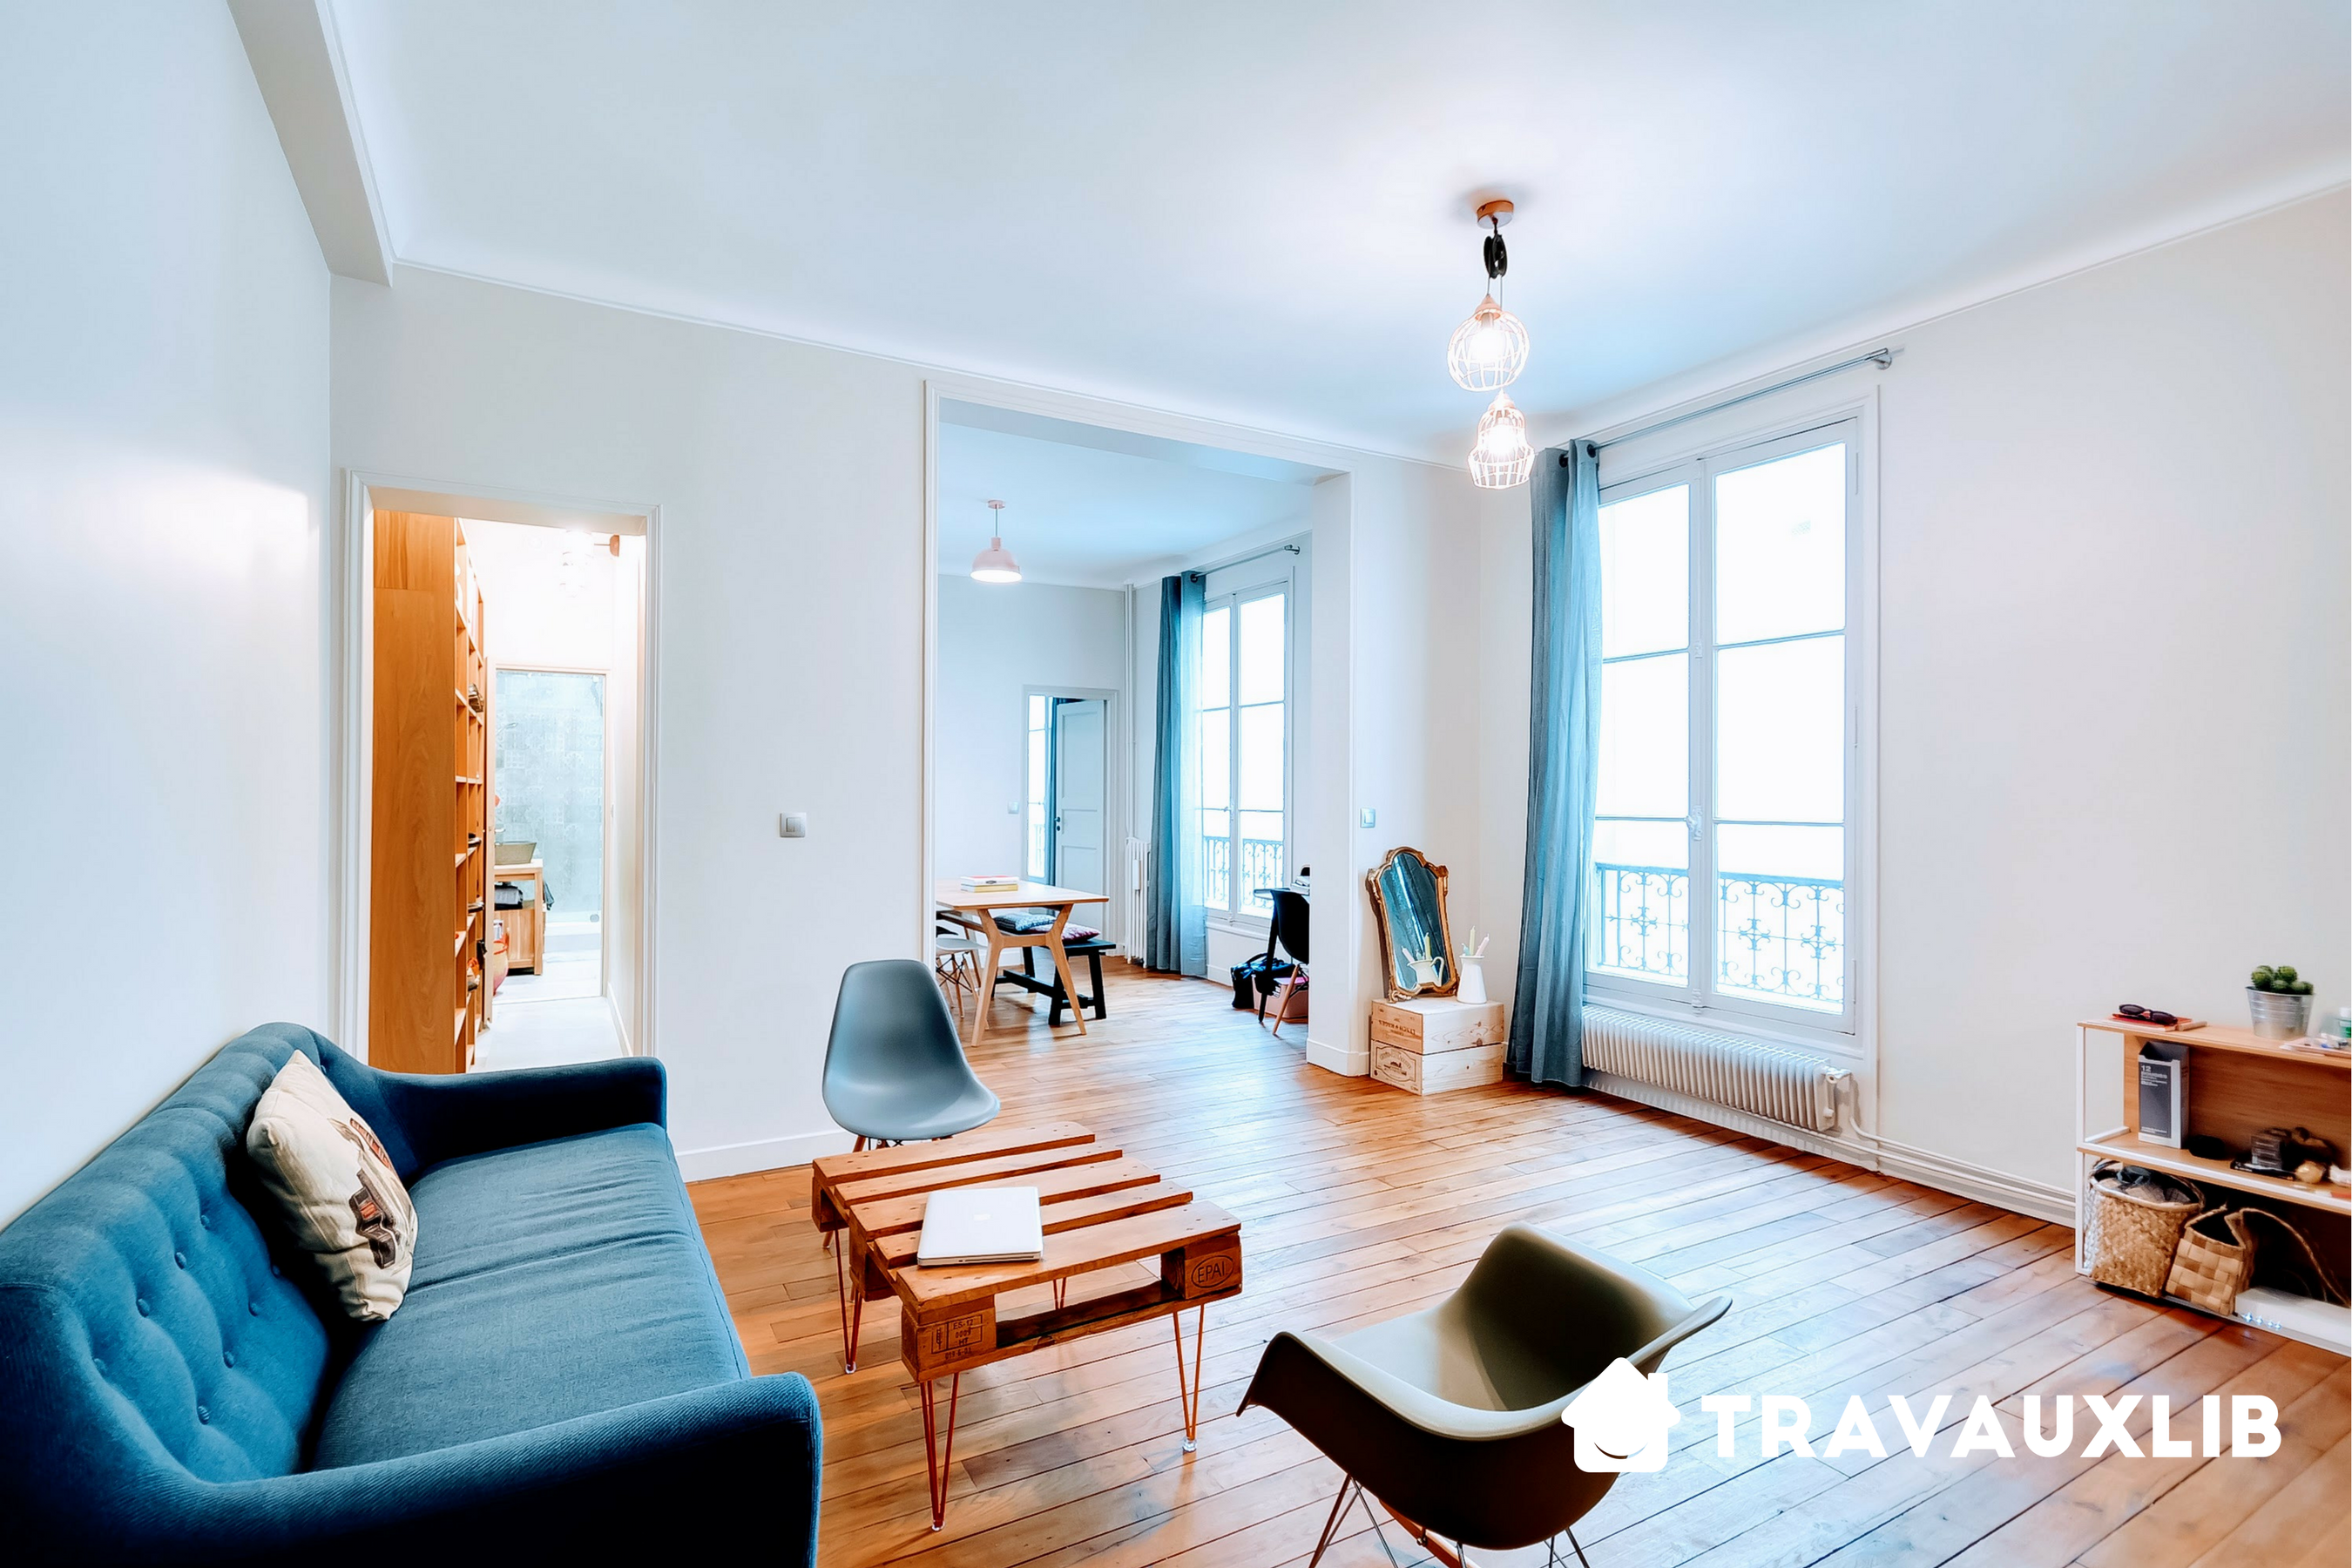 Beautiful French Startup Travauxlib Matches You With Construction Companies So That  They Can Fix Up Your Home. The Company Raised $1.9 Million (u20ac1.8 Million)  From ...